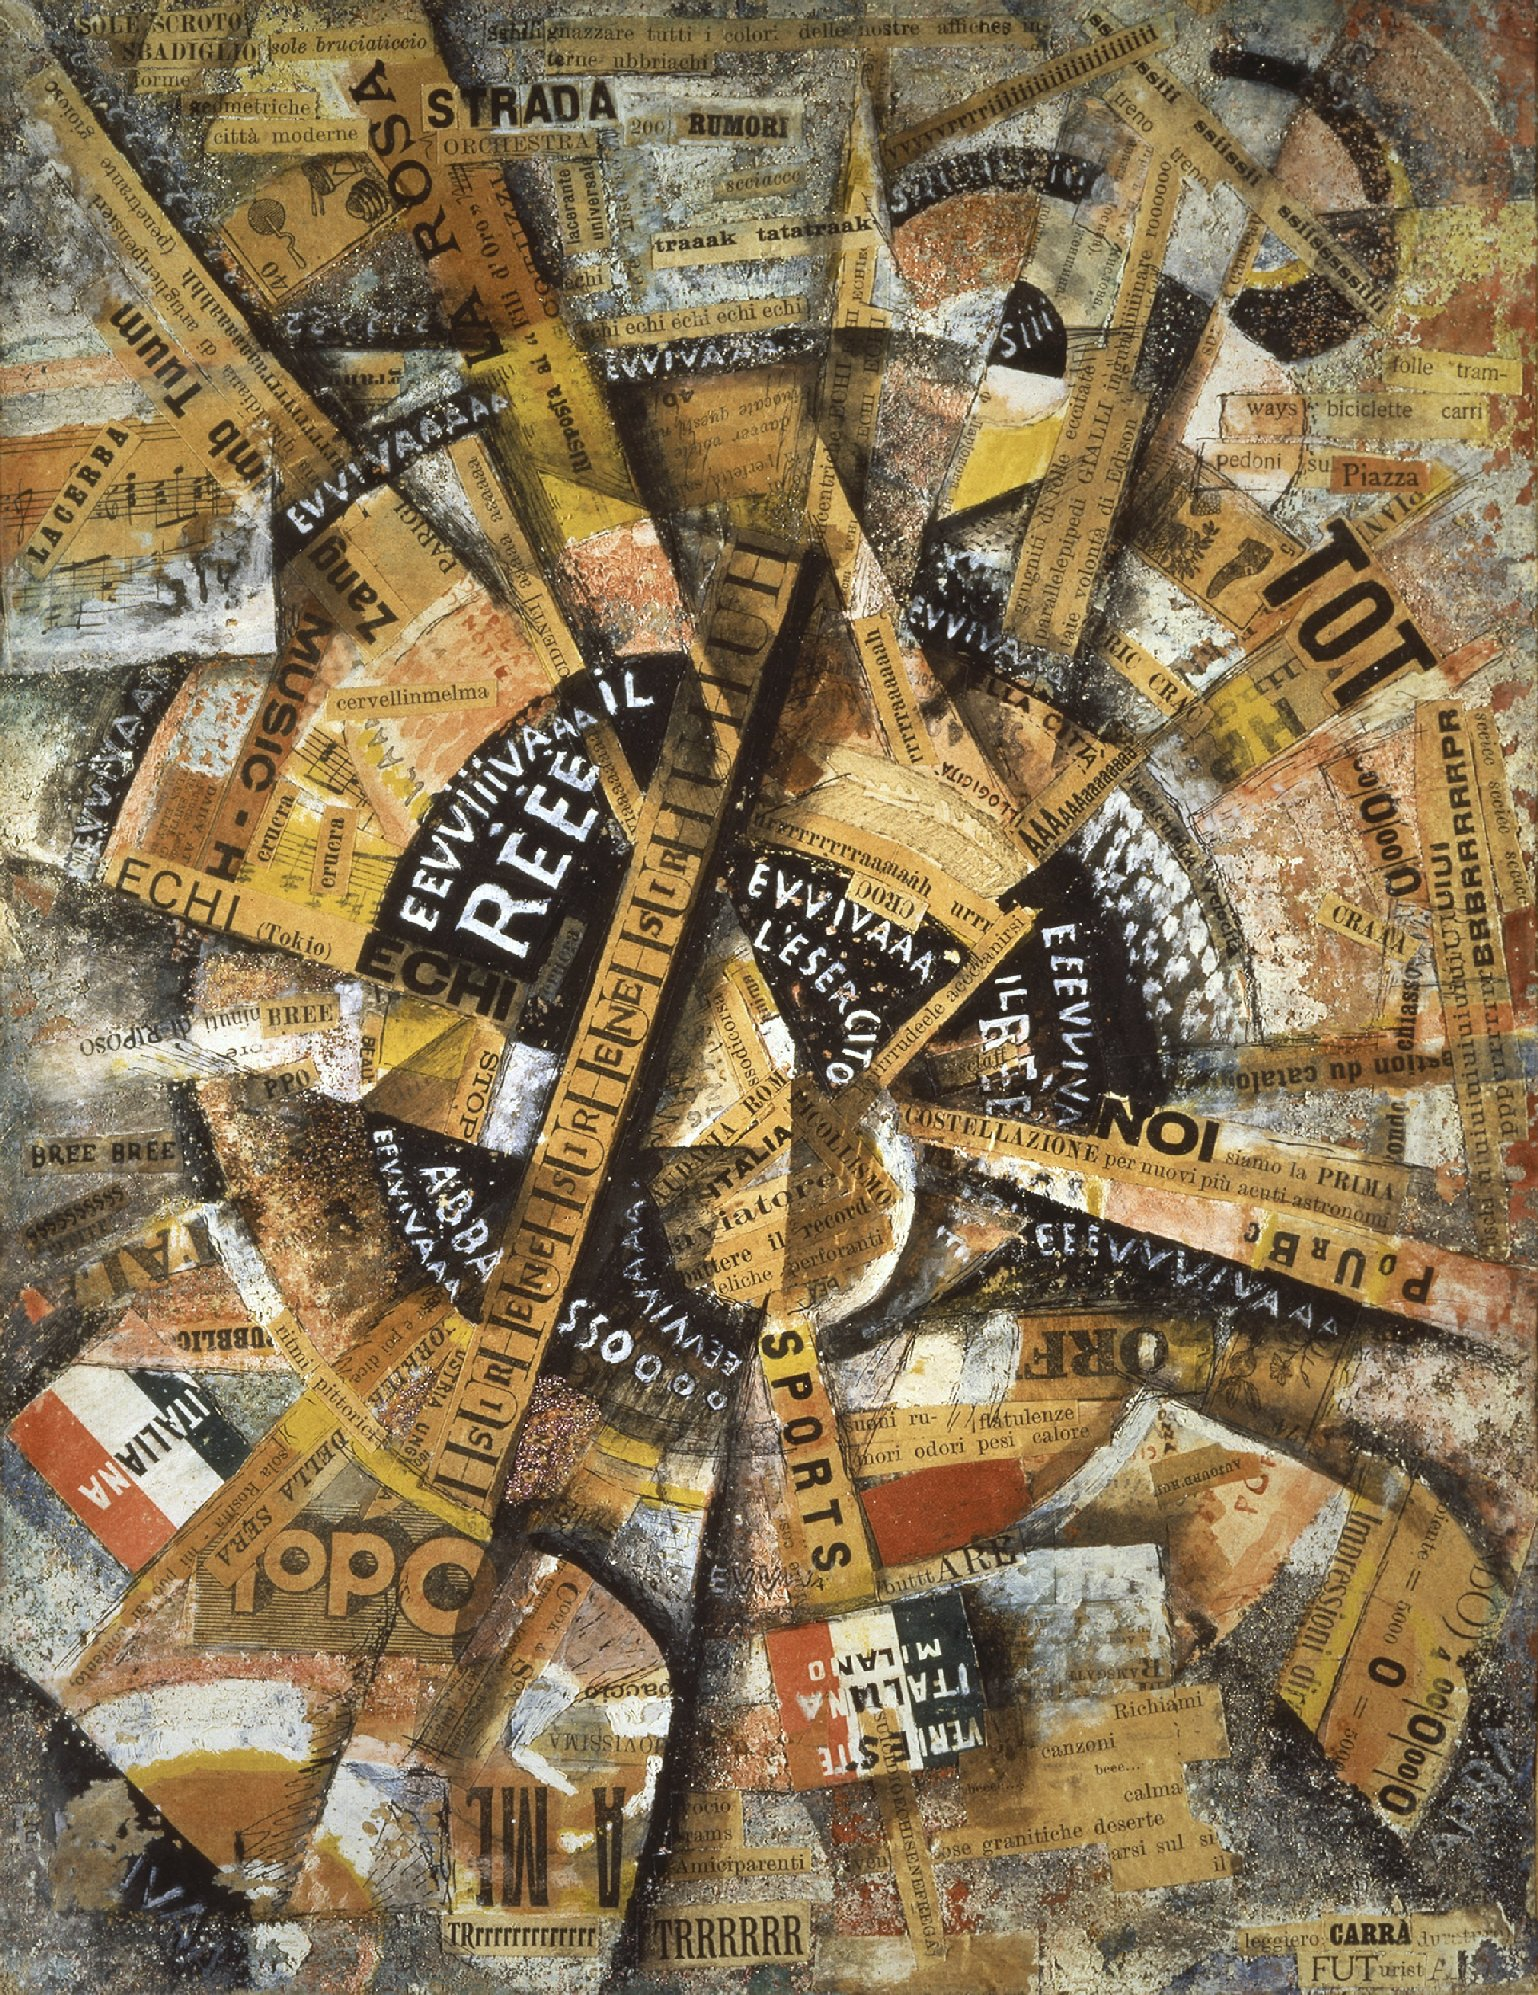 Carlo Carrà Interventionist Demonstration (Manifestazione Interventista), 1914